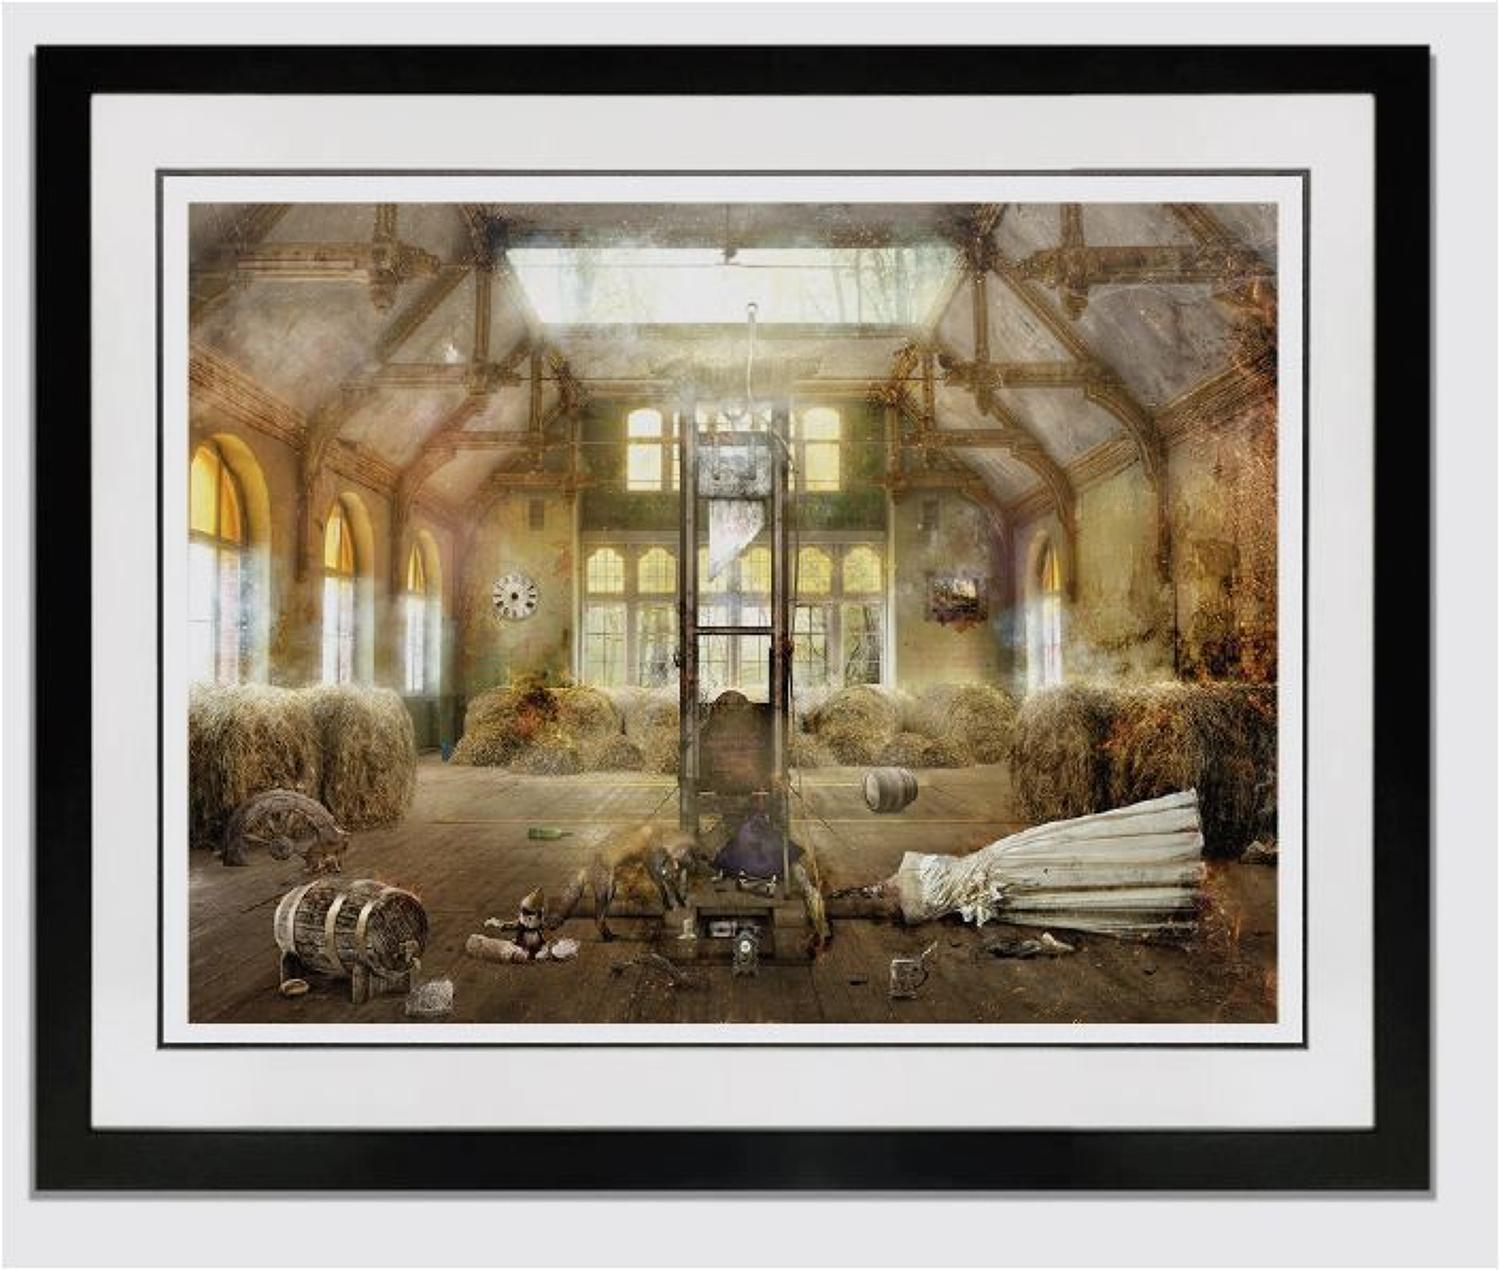 Rumposilshkin Framed Art Print by Mark Davies